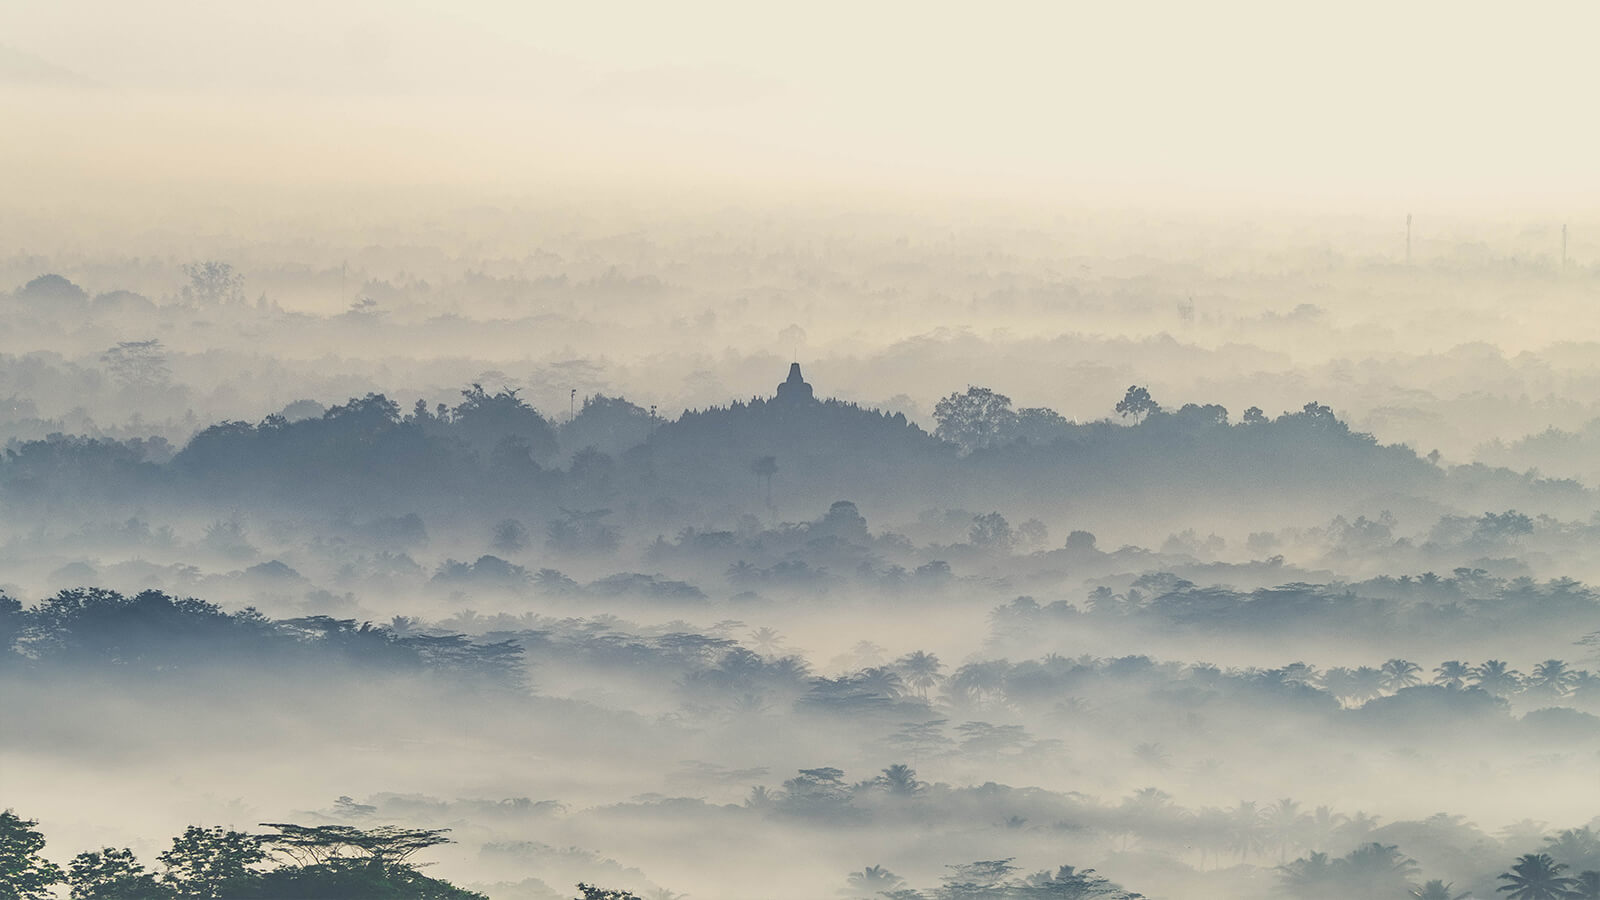 Cloudy morning sunrise over Borobudur Temple in Indonesia, a world famous UNESCO site